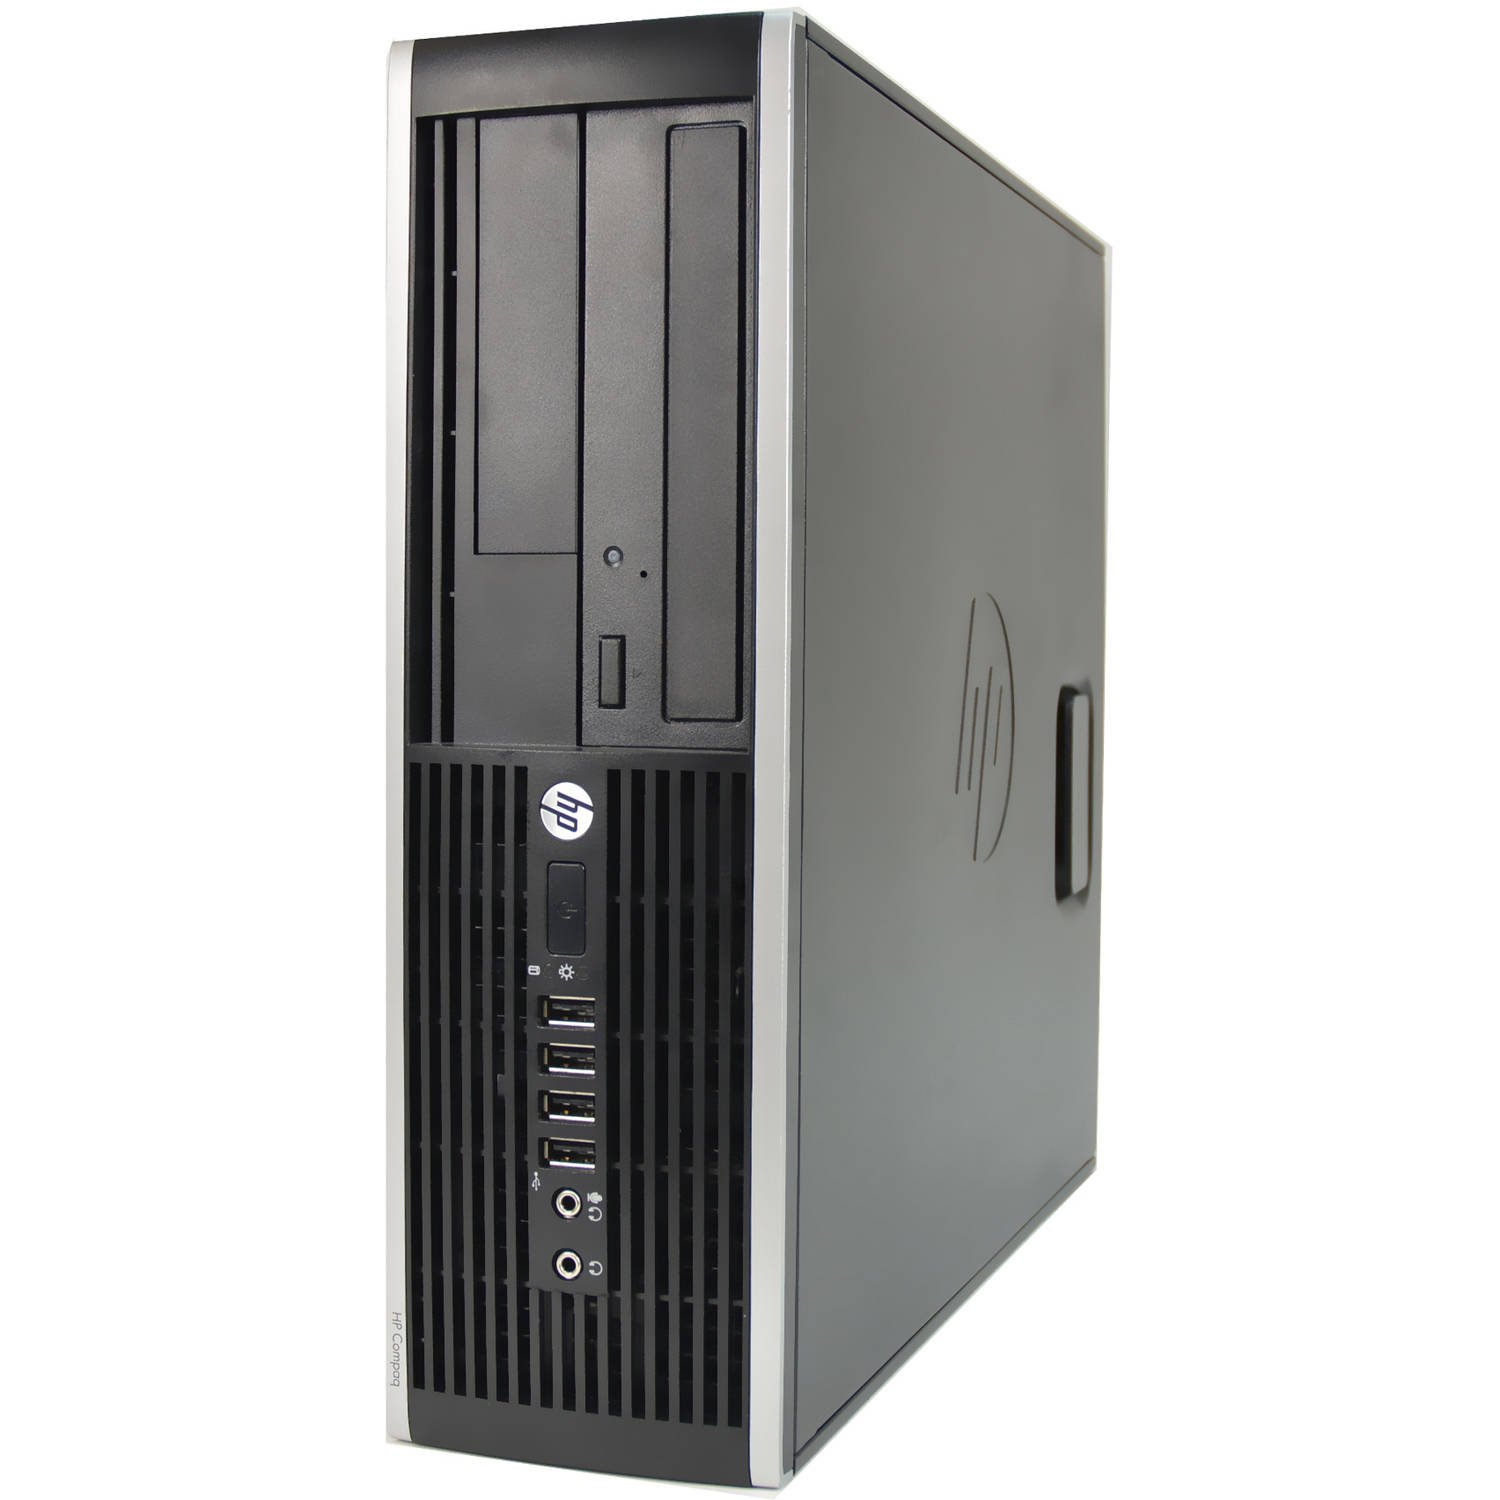 Hp Elite 8300 - Ordenador de sobremesa (Intel Core i5-3470, 8GB de RAM, Disco SSD de 240GB, Lector DVD, Windows 10 PRO ES 64): Amazon.es: Electrónica